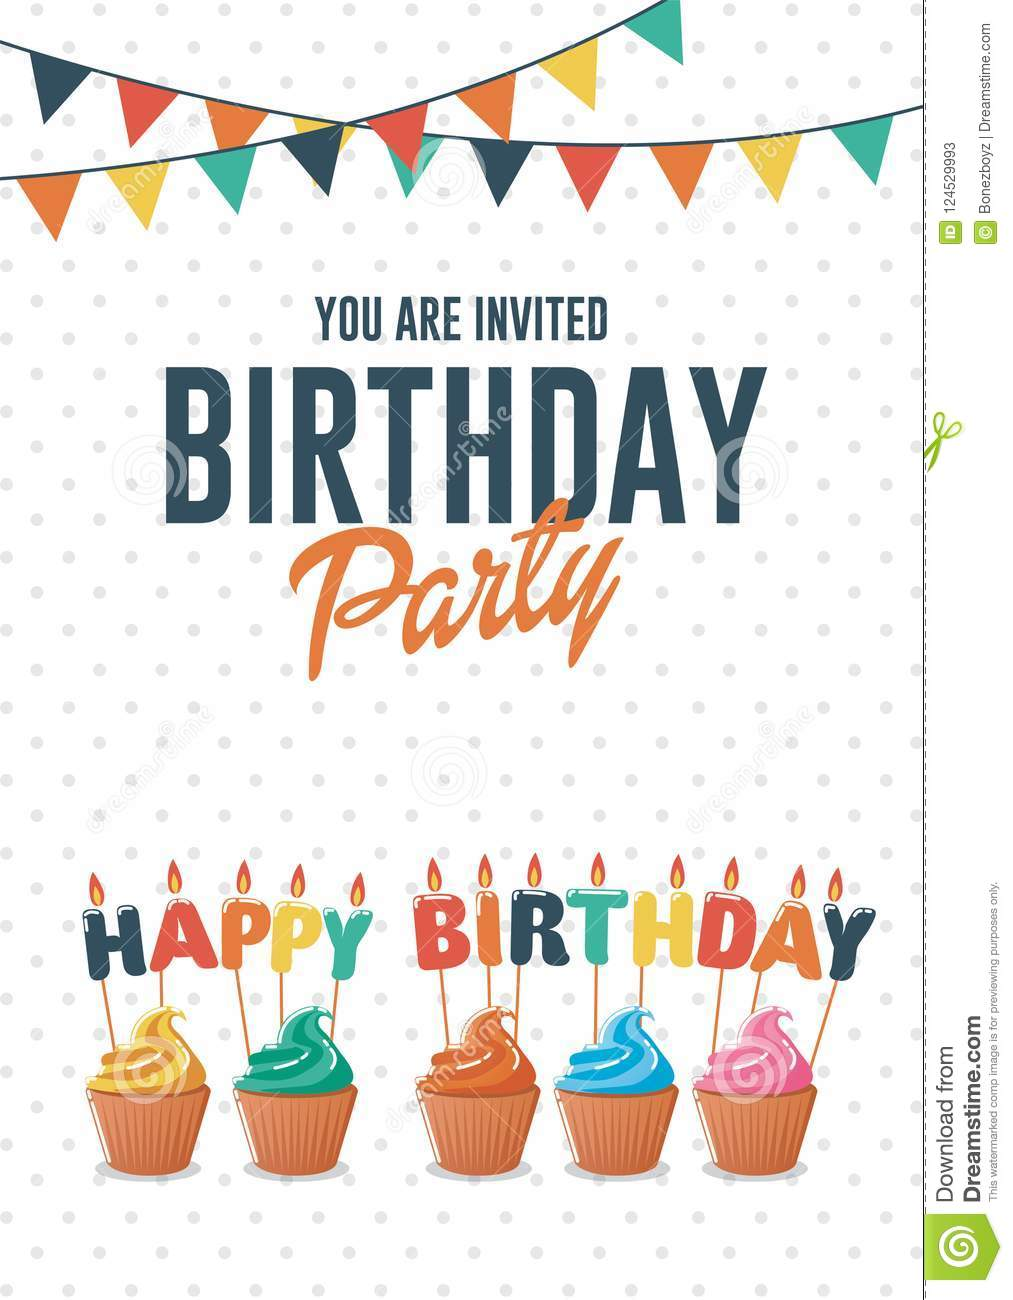 Birthday Greeting And Invitation Card With Colorful Cupcakes